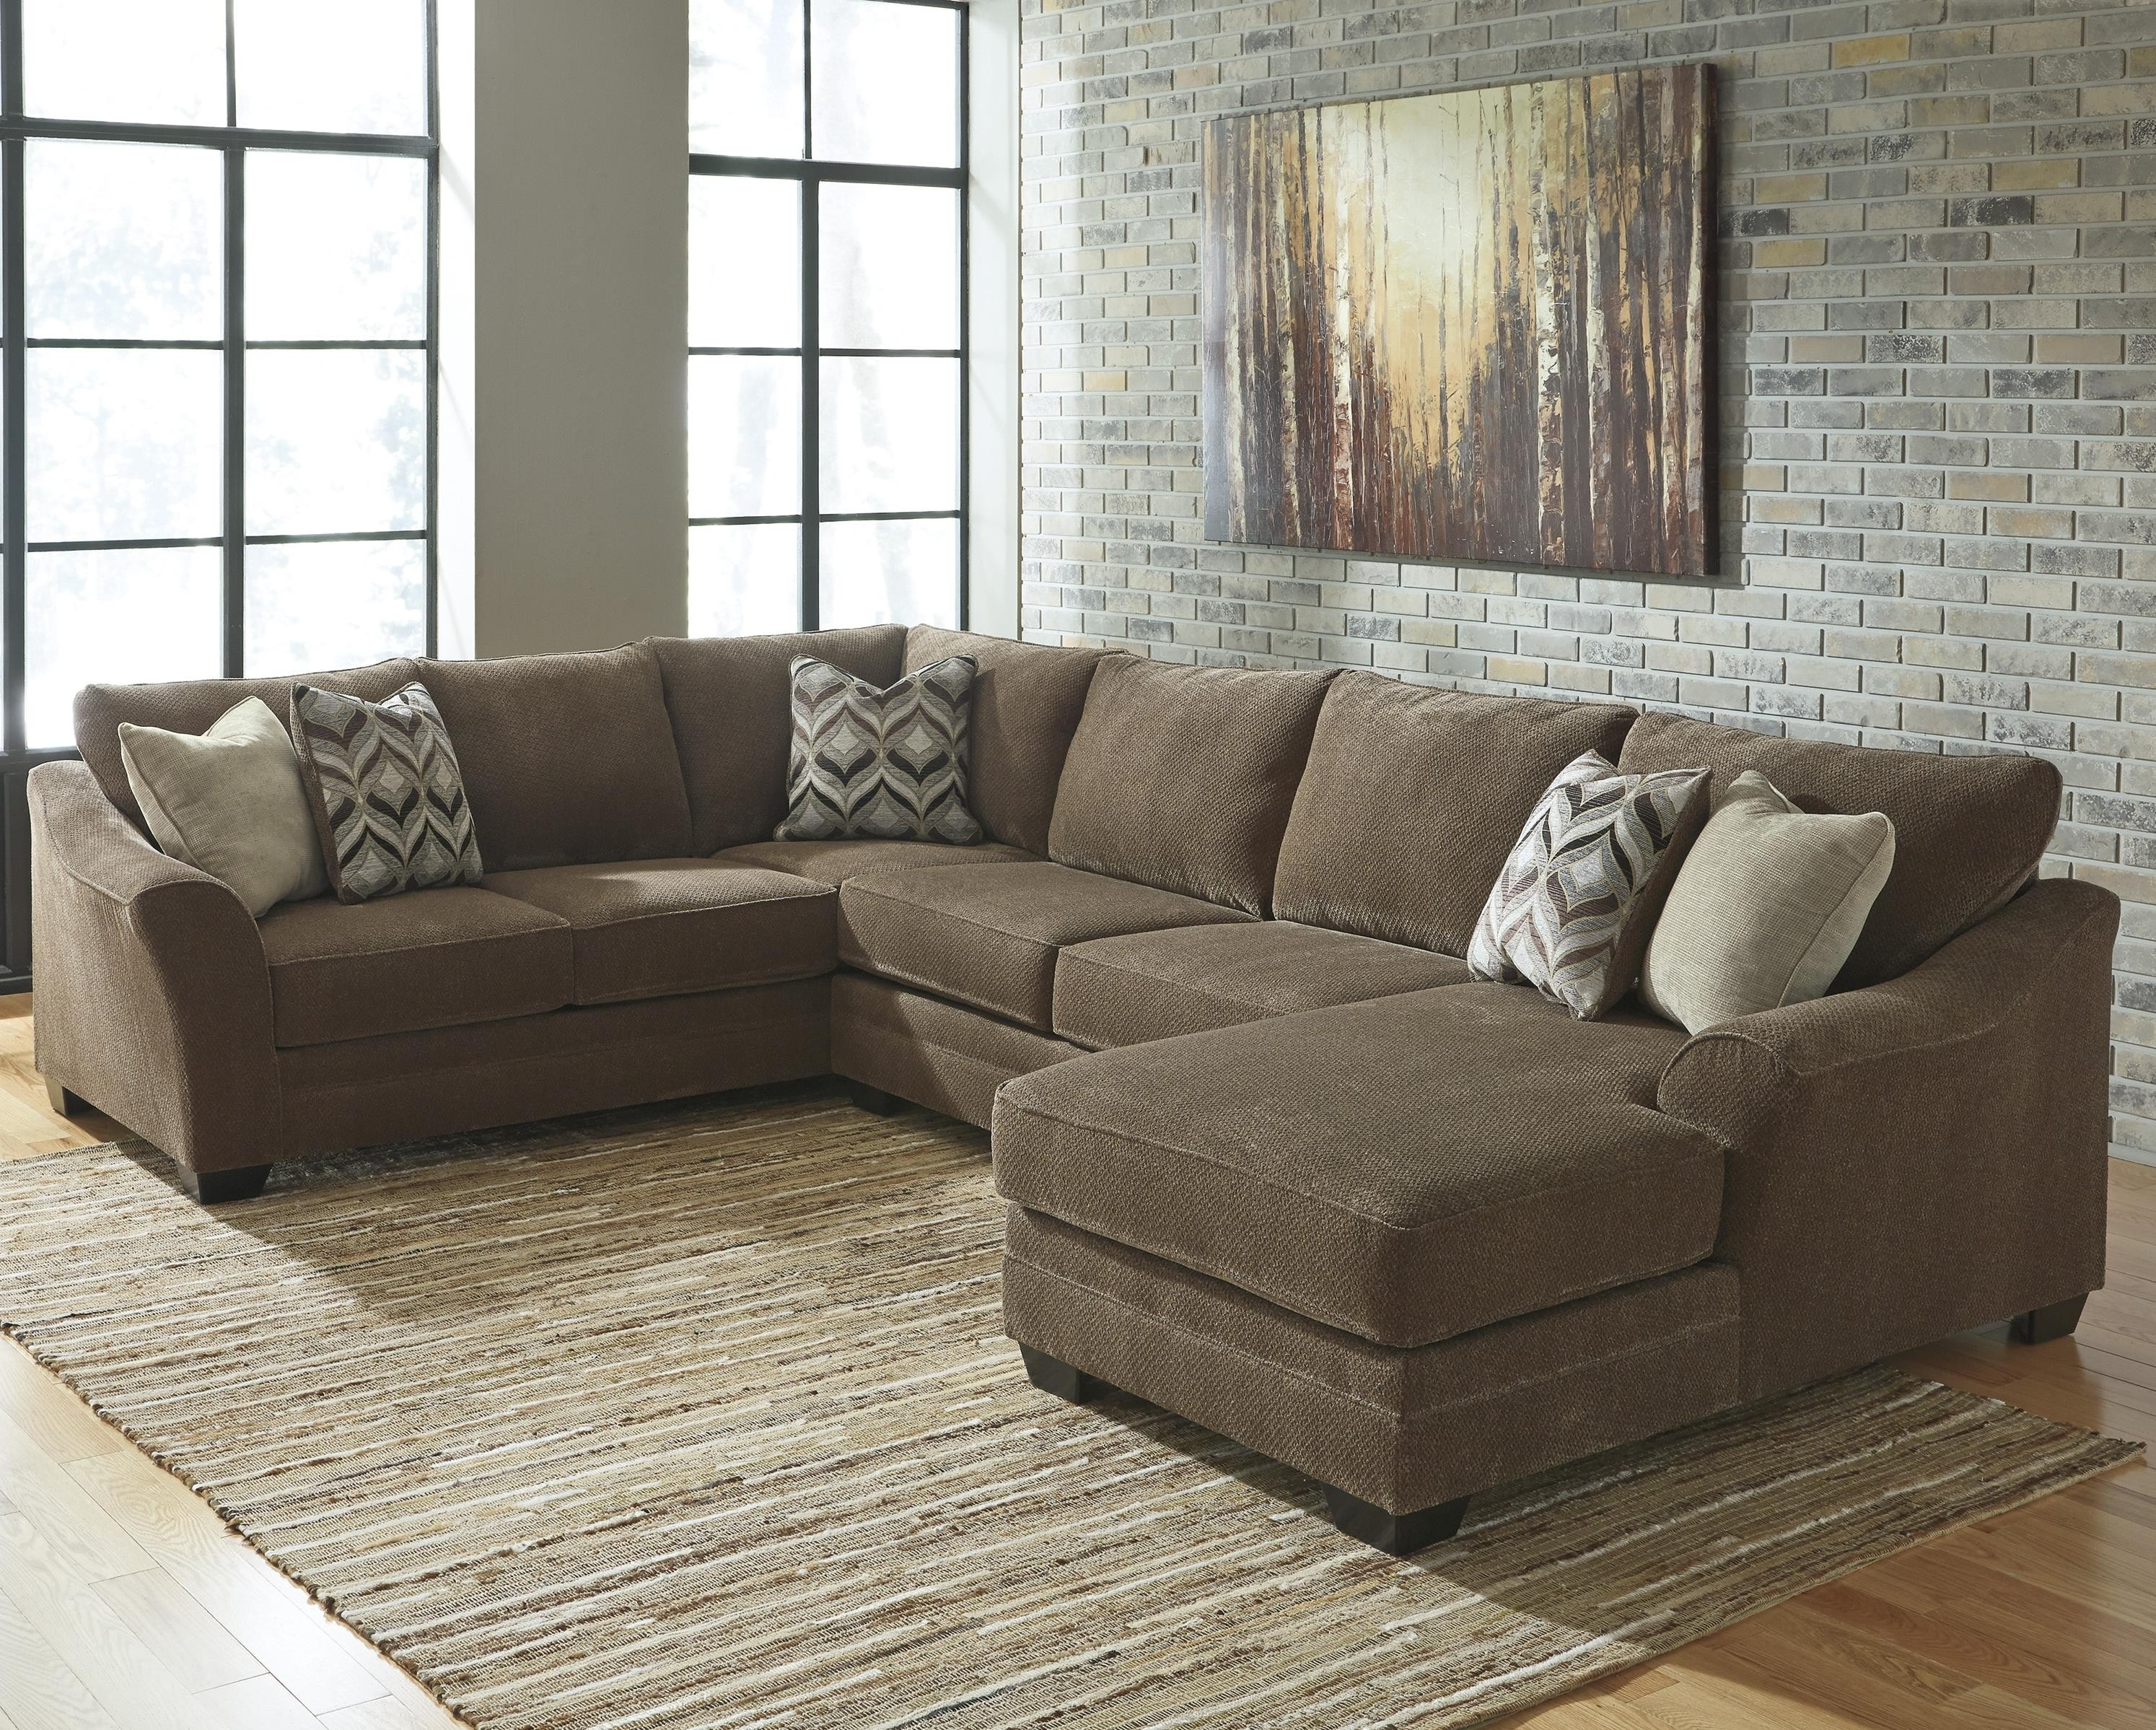 3 Piece Sectional Malbry Point W Laf Chaise Living Spaces 223533 0 For Malbry Point 3 Piece Sectionals With Raf Chaise (Photo 9 of 25)